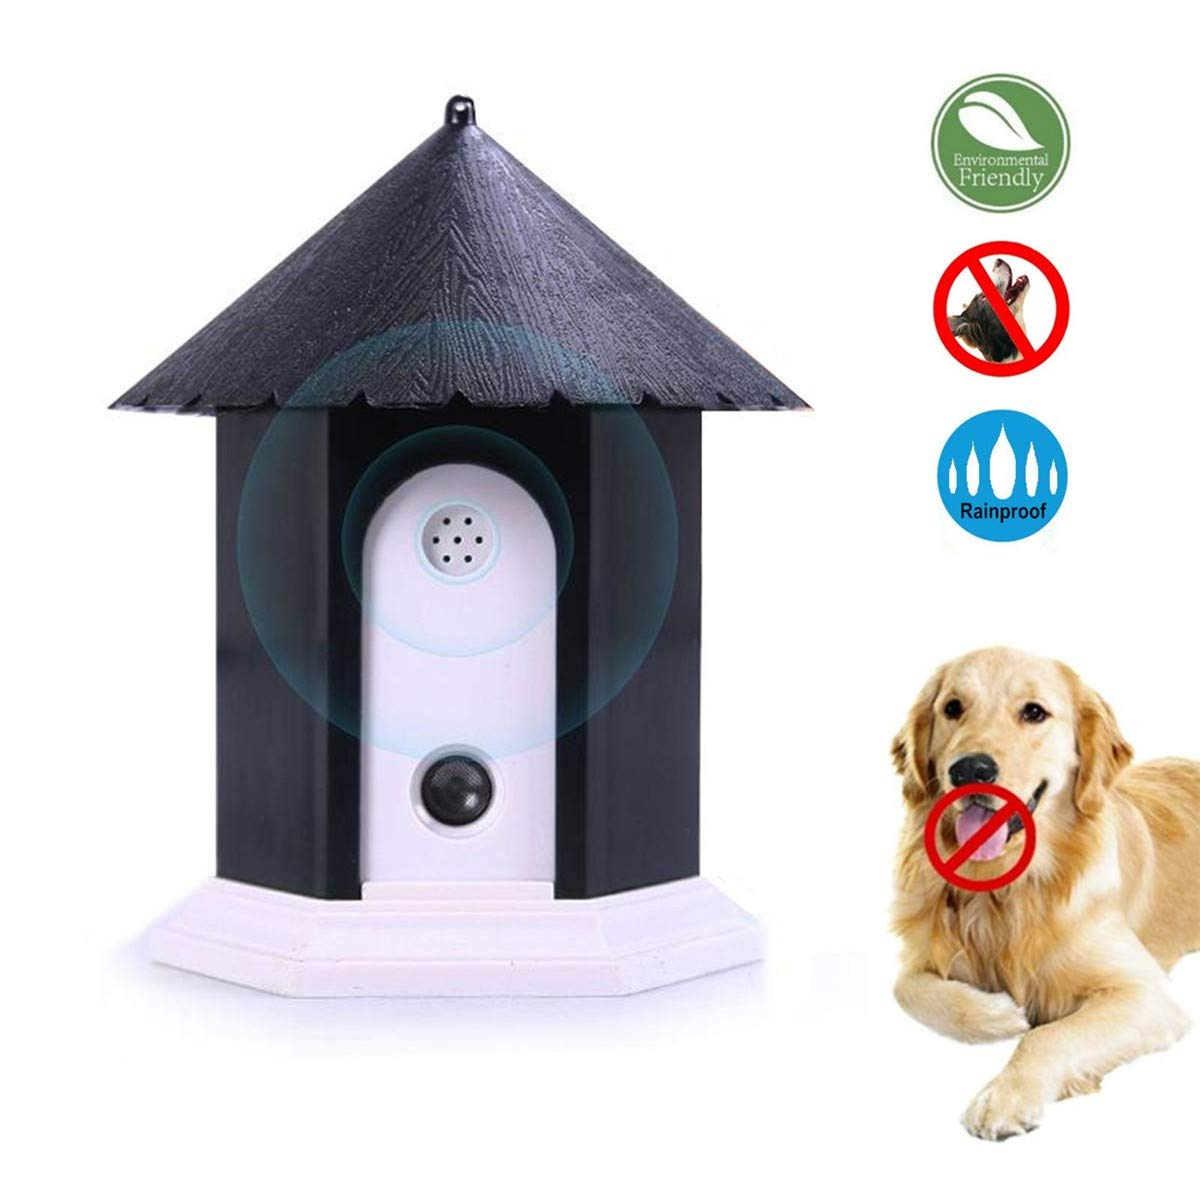 HoomDirect Anti Barking Device, Outdoor Ultrasonic Bark Control, Sonic Bark Deterrents,Waterproof Dog Bark Controller in Birdhouse Shape by HoomDirect